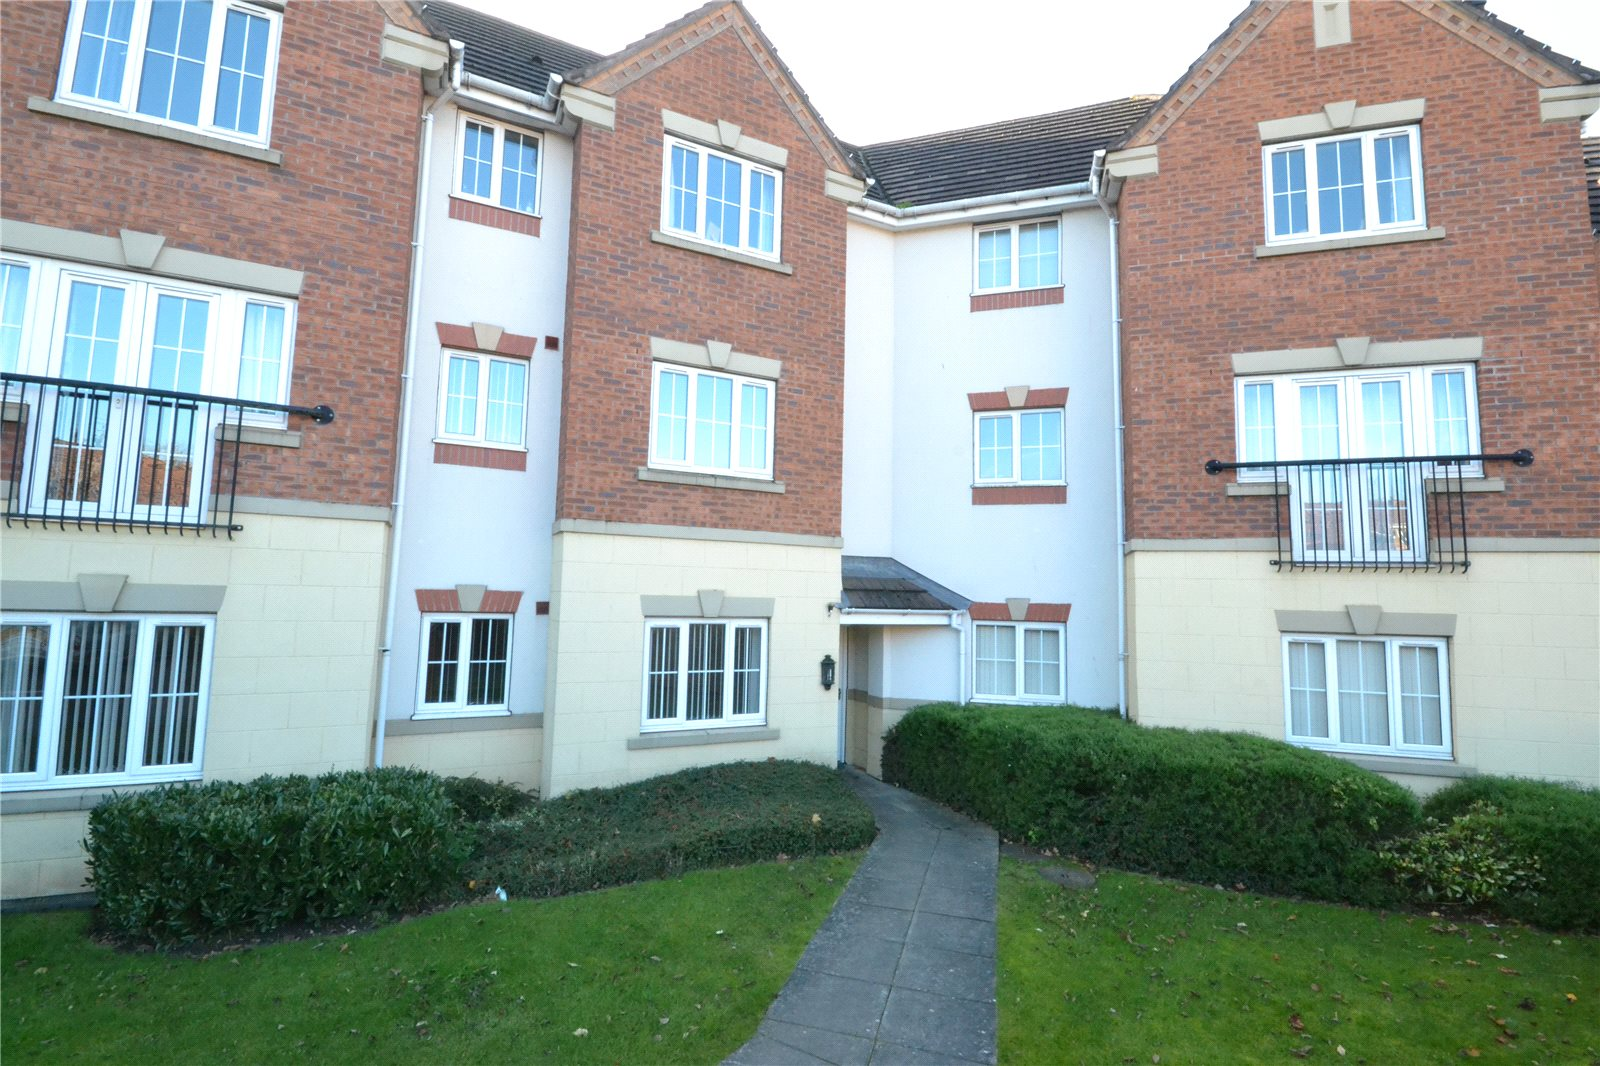 2 Bedrooms Flat for sale in 53 Finchale Avenue, Priorslee, Telford, Shropshire, TF2